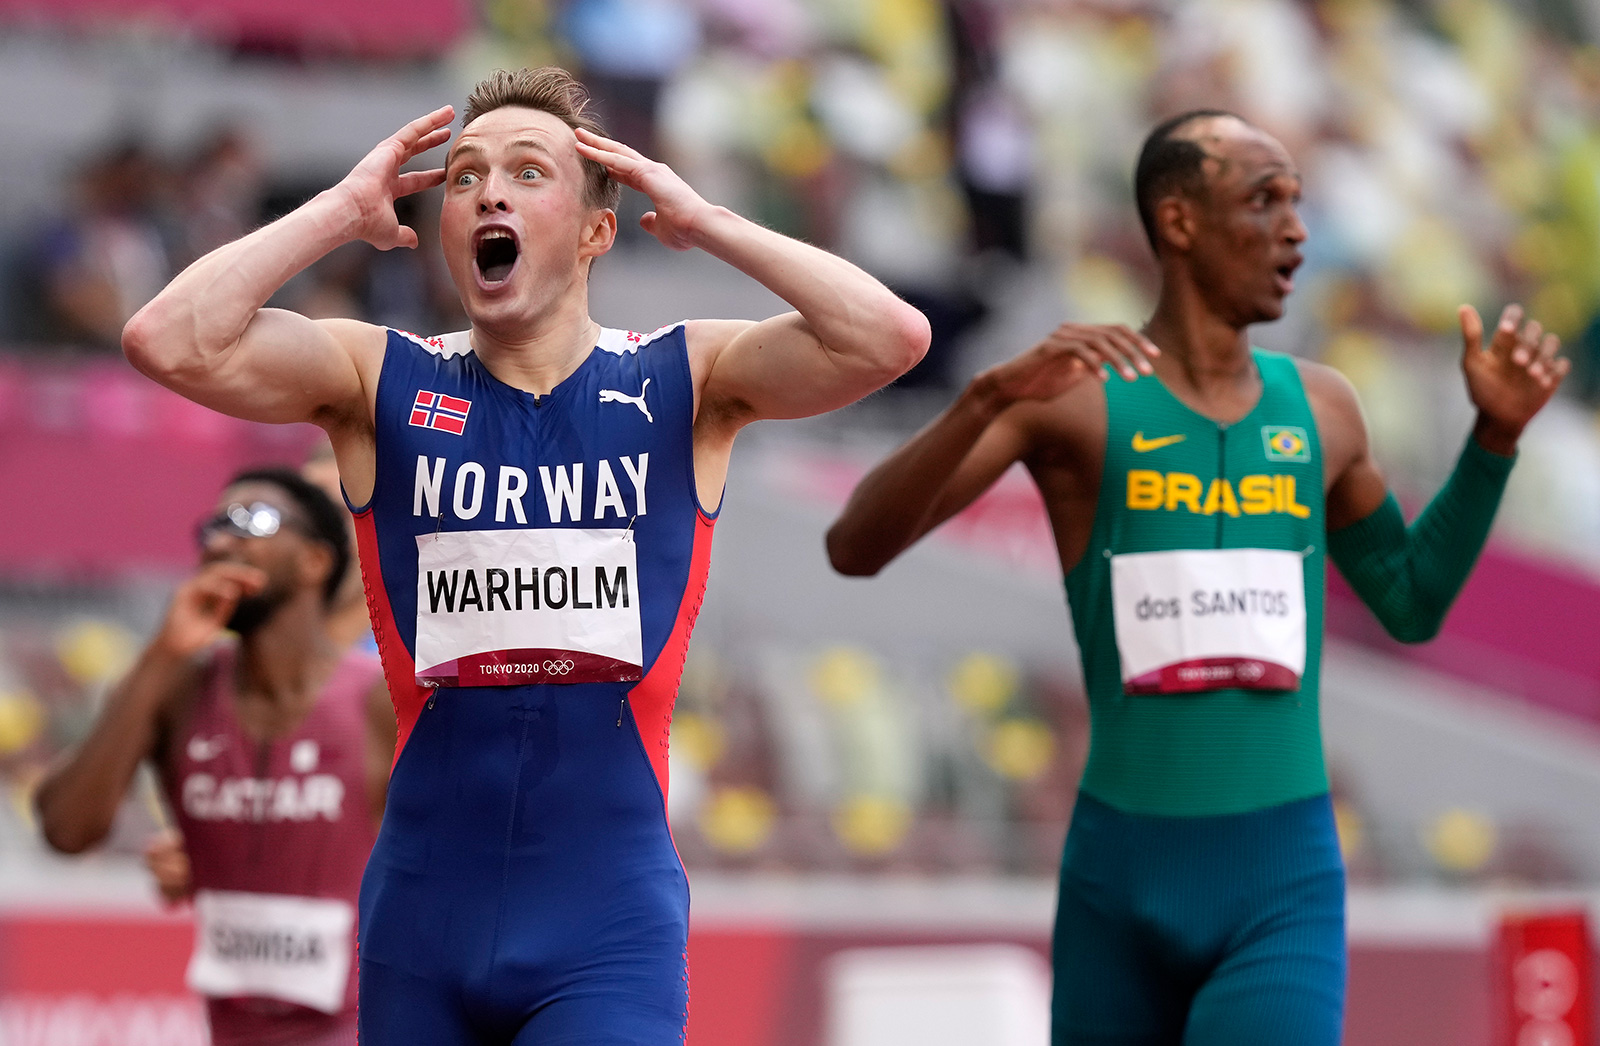 Norway's Karsten Warholm celebrates after winning the gold medal and breaking a world record in the 400 meter hurdles final on Tuesday.